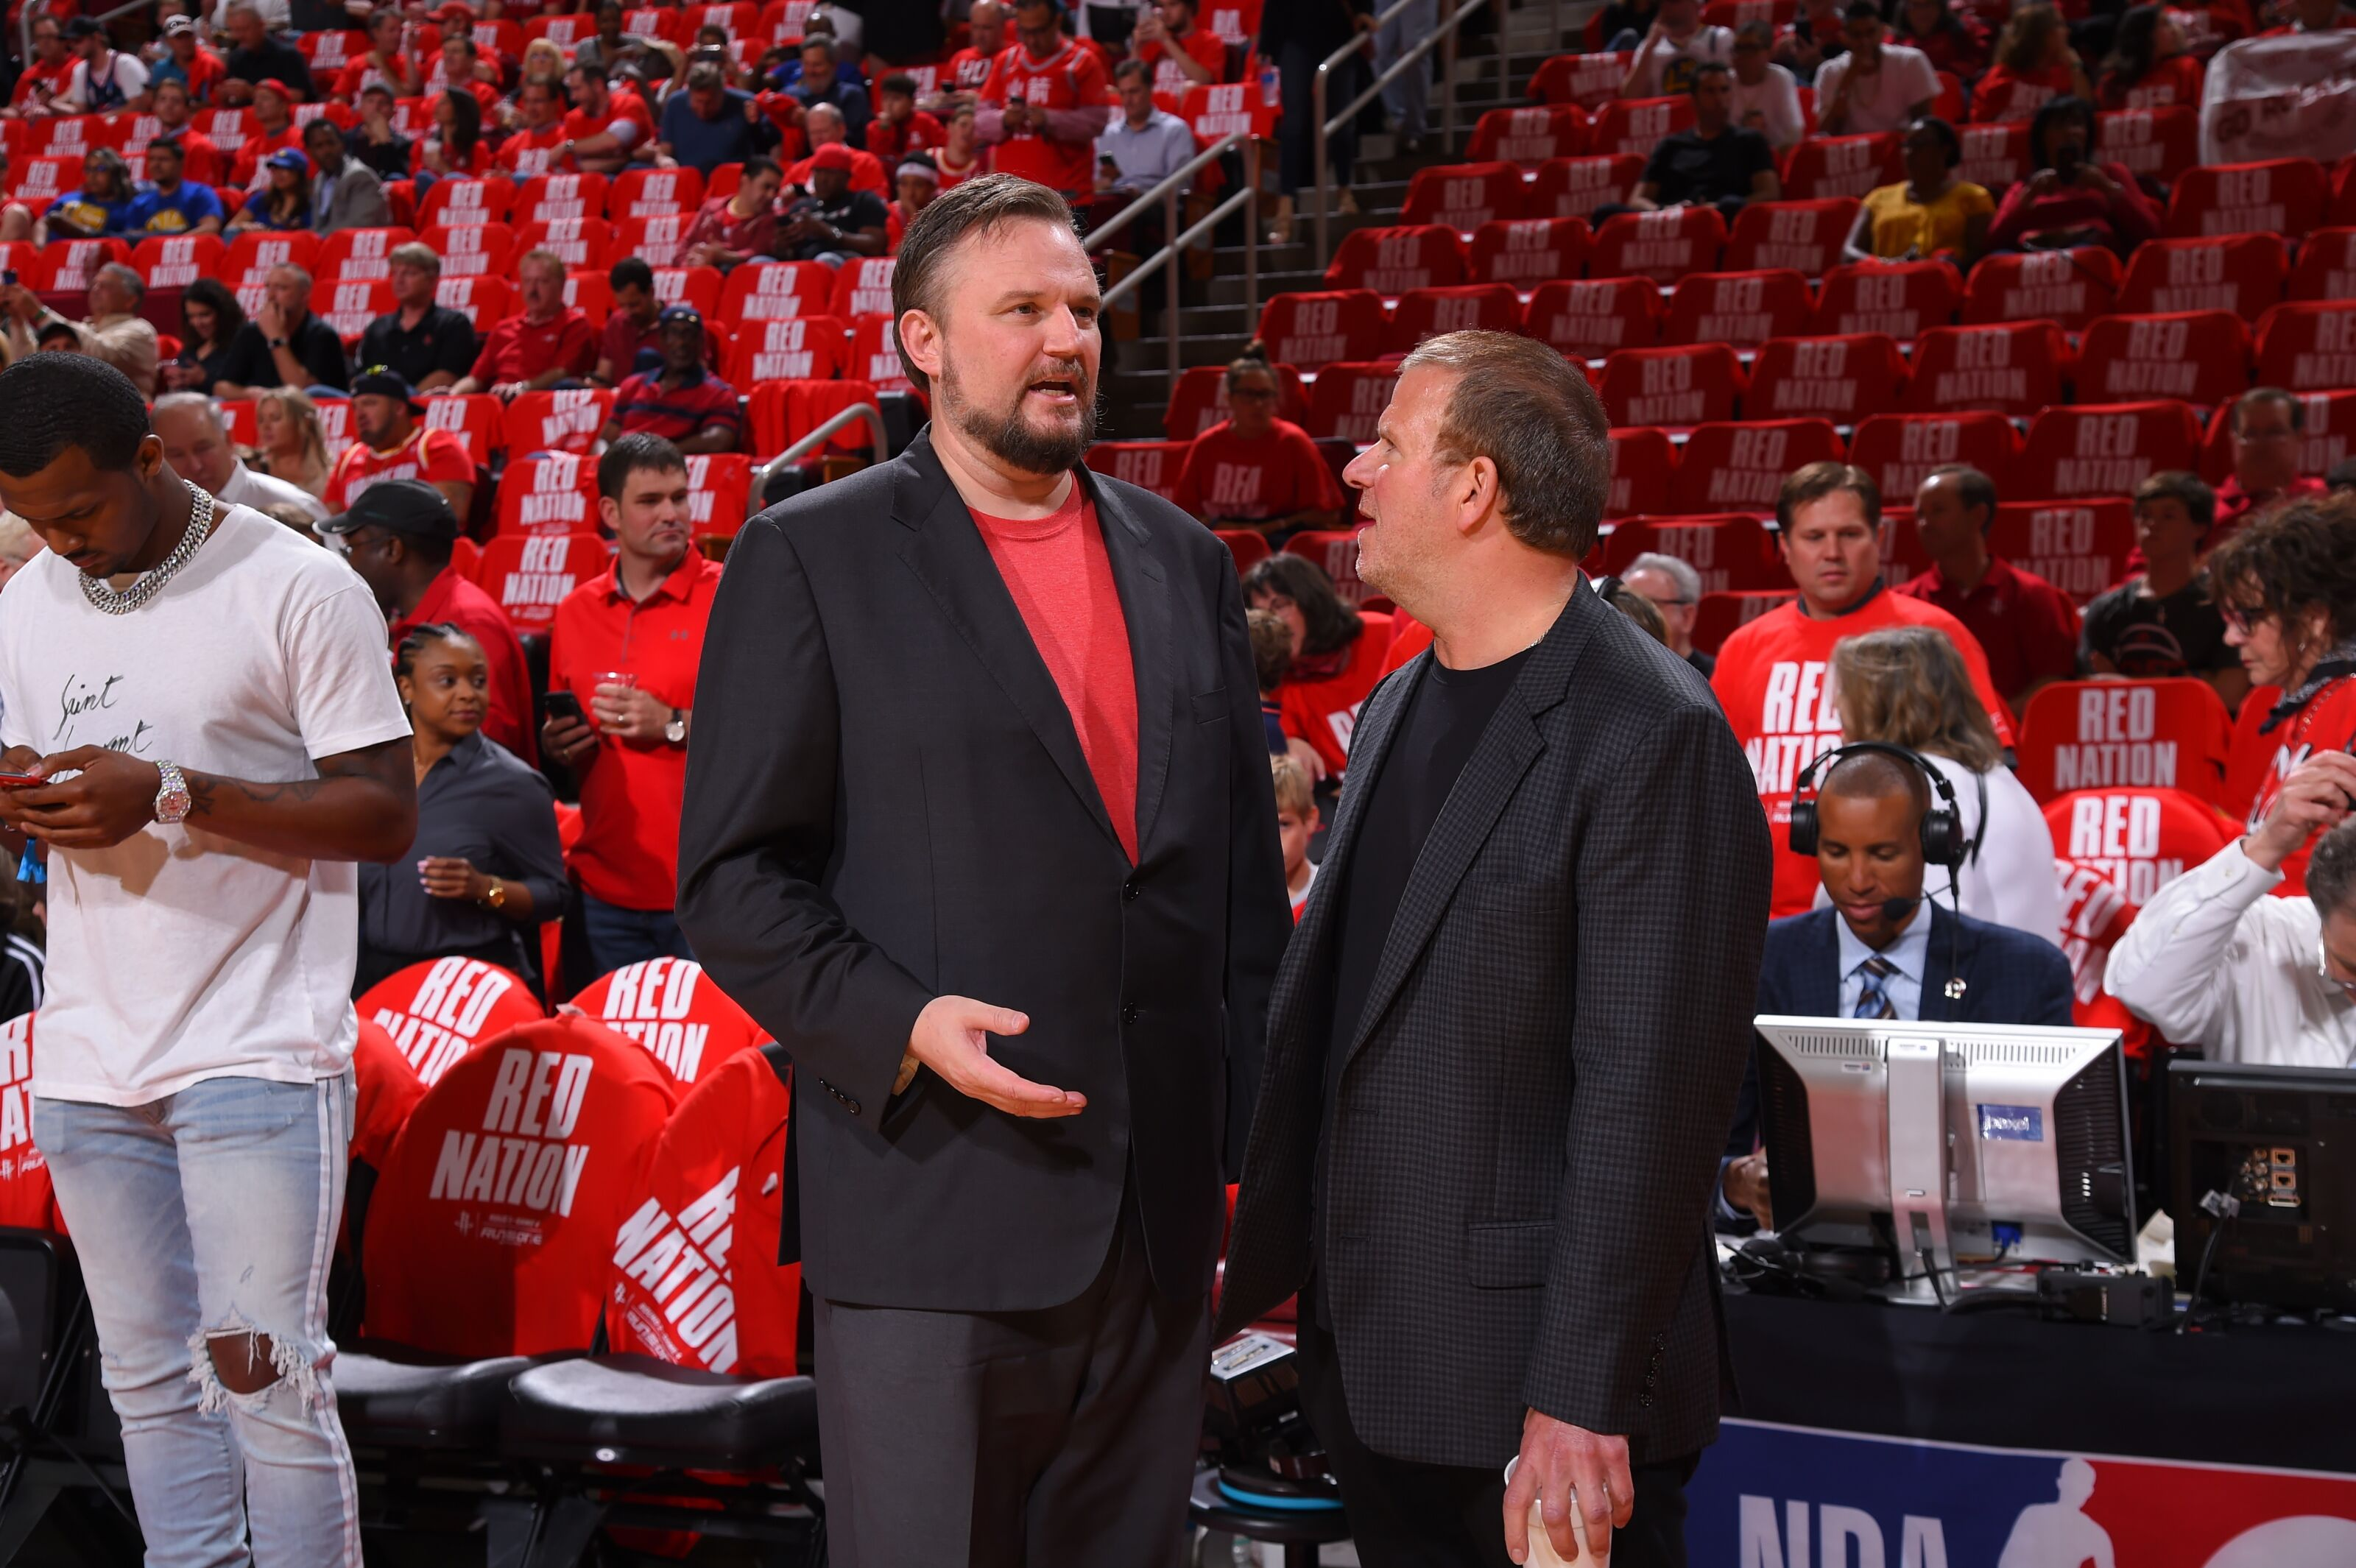 Roxit: All you need to know about the Houston Rockets leaving the NBA